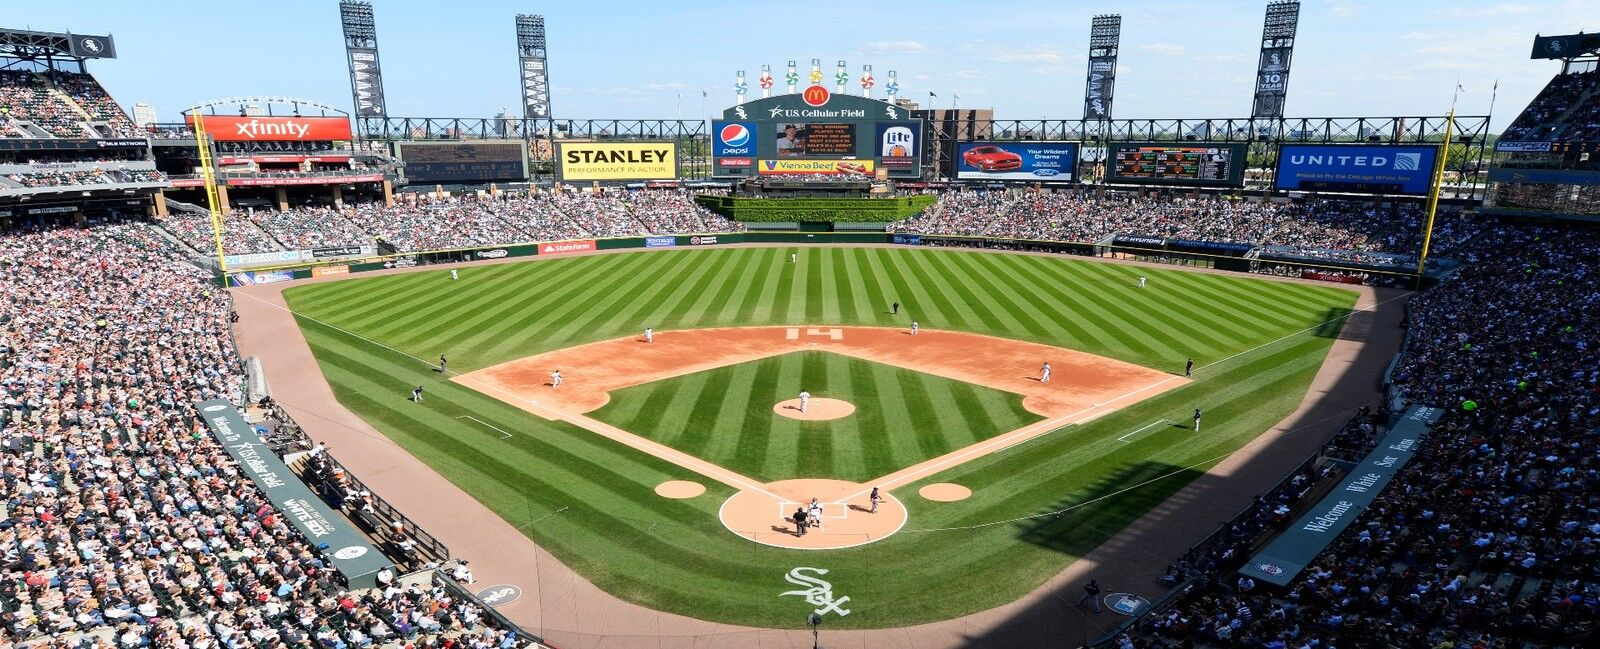 Oakland Athletics at Chicago White Sox